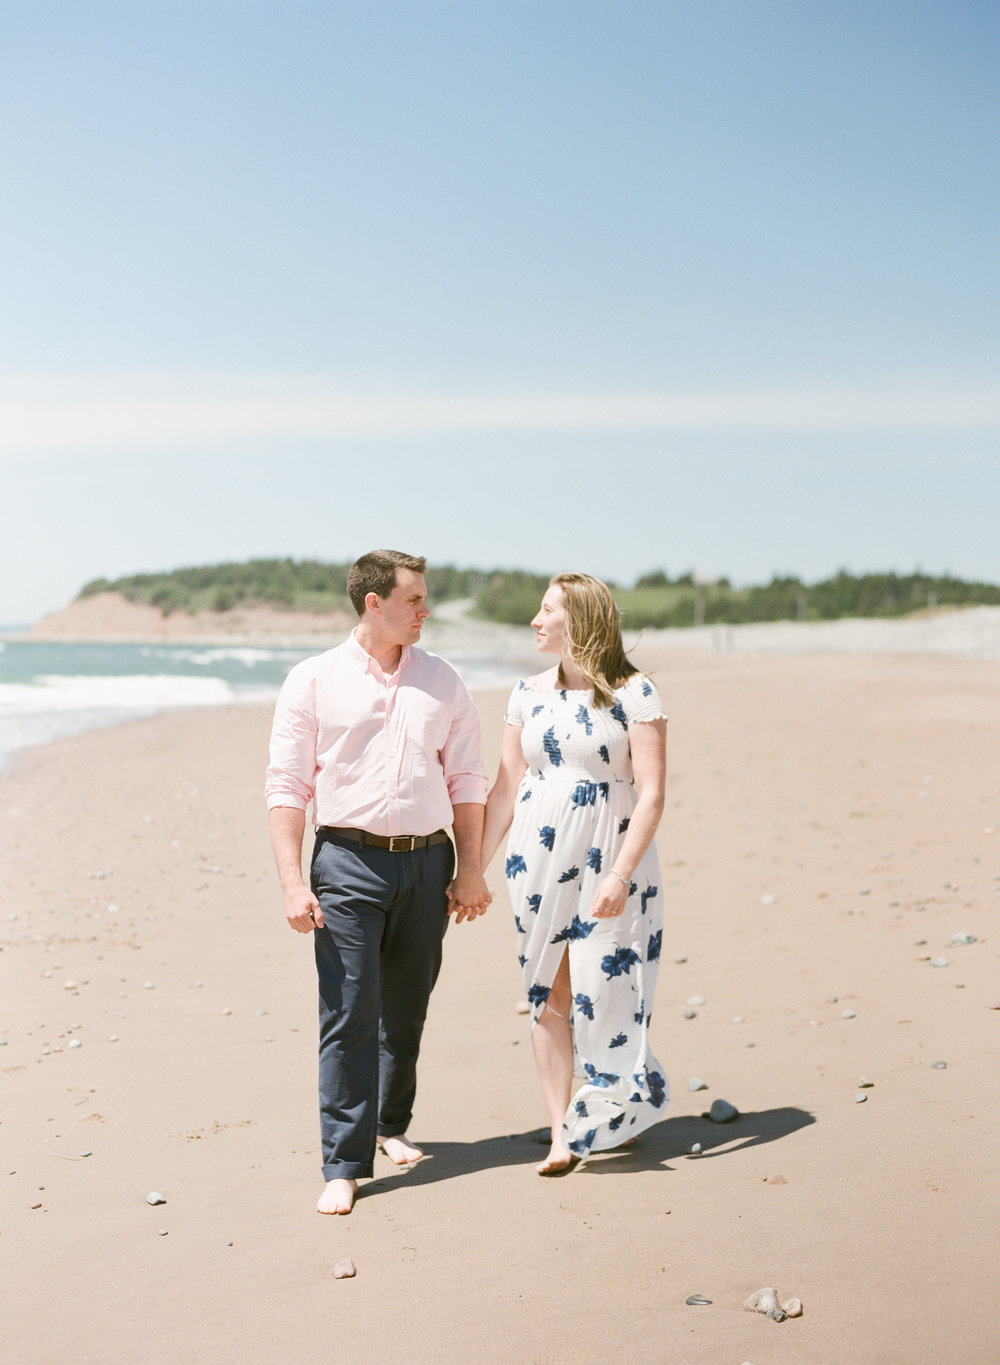 Jacqueline Anne Photography-Melissa and Daniel - Contax 645 - Beach Full Sun-24-13.jpg